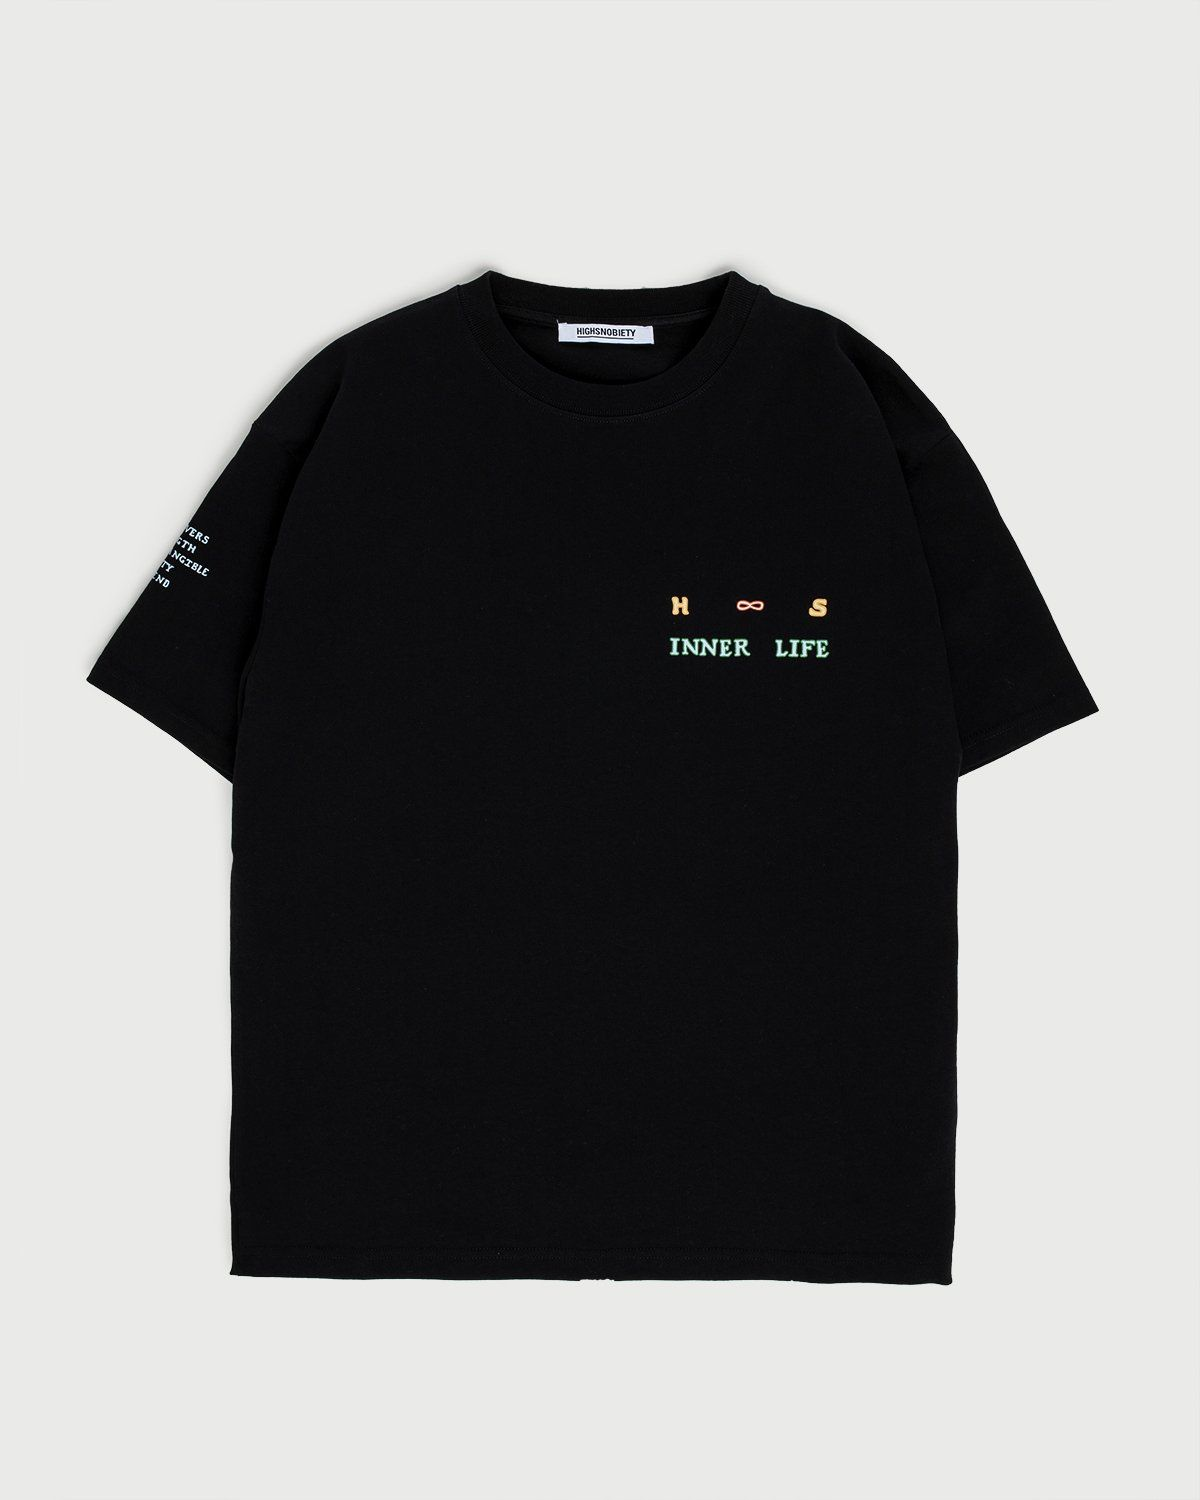 Inner Life by Highsnobiety - T-Shirt Black - Image 4